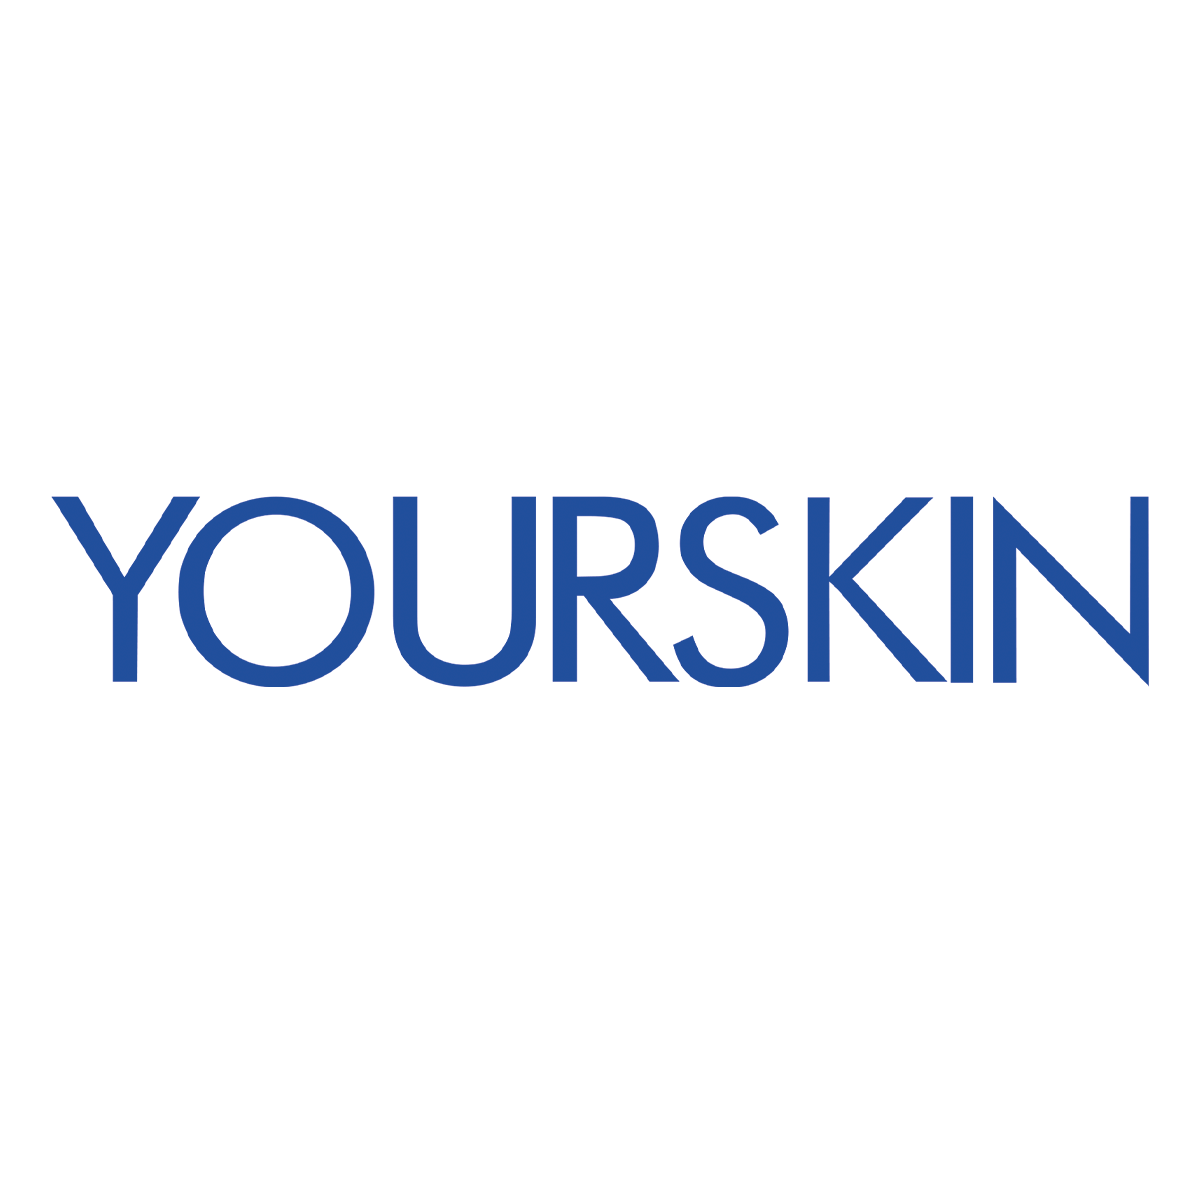 Eucerin UreaRepair Plus Waslotion 5% Urea - 400ml